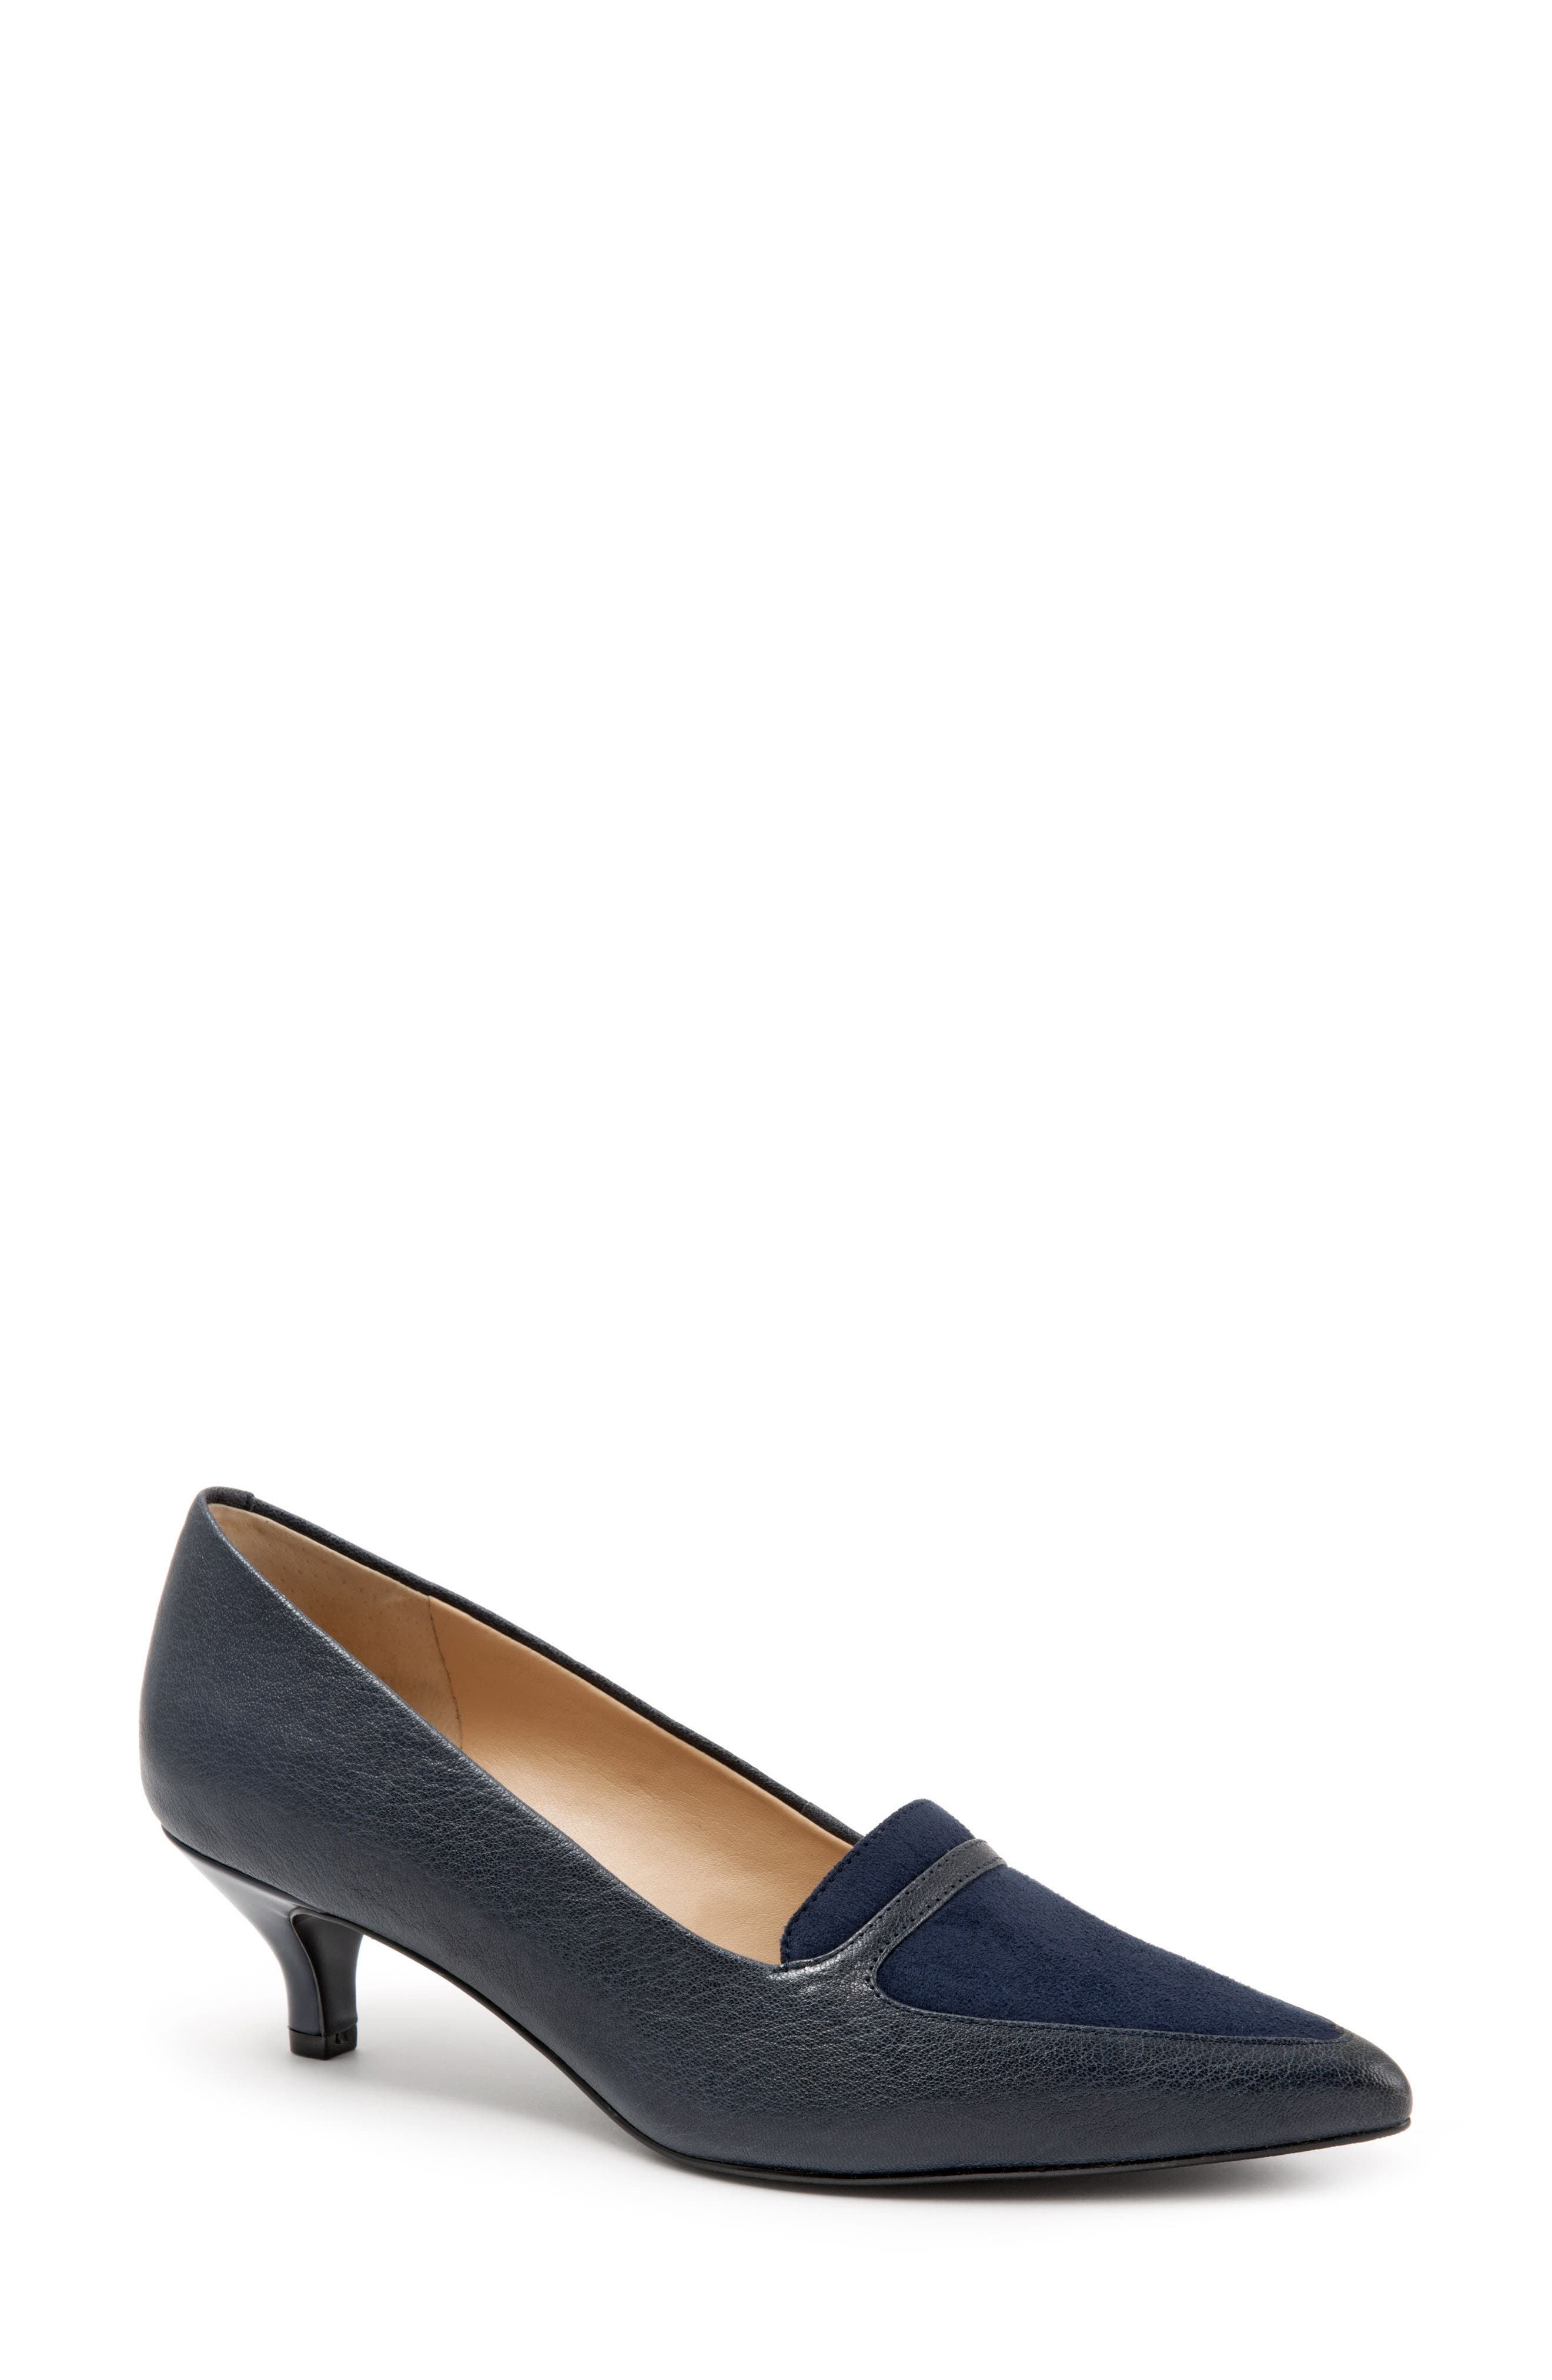 Main Image - Trotters 'Piper' Pointy Toe Pump (Women)